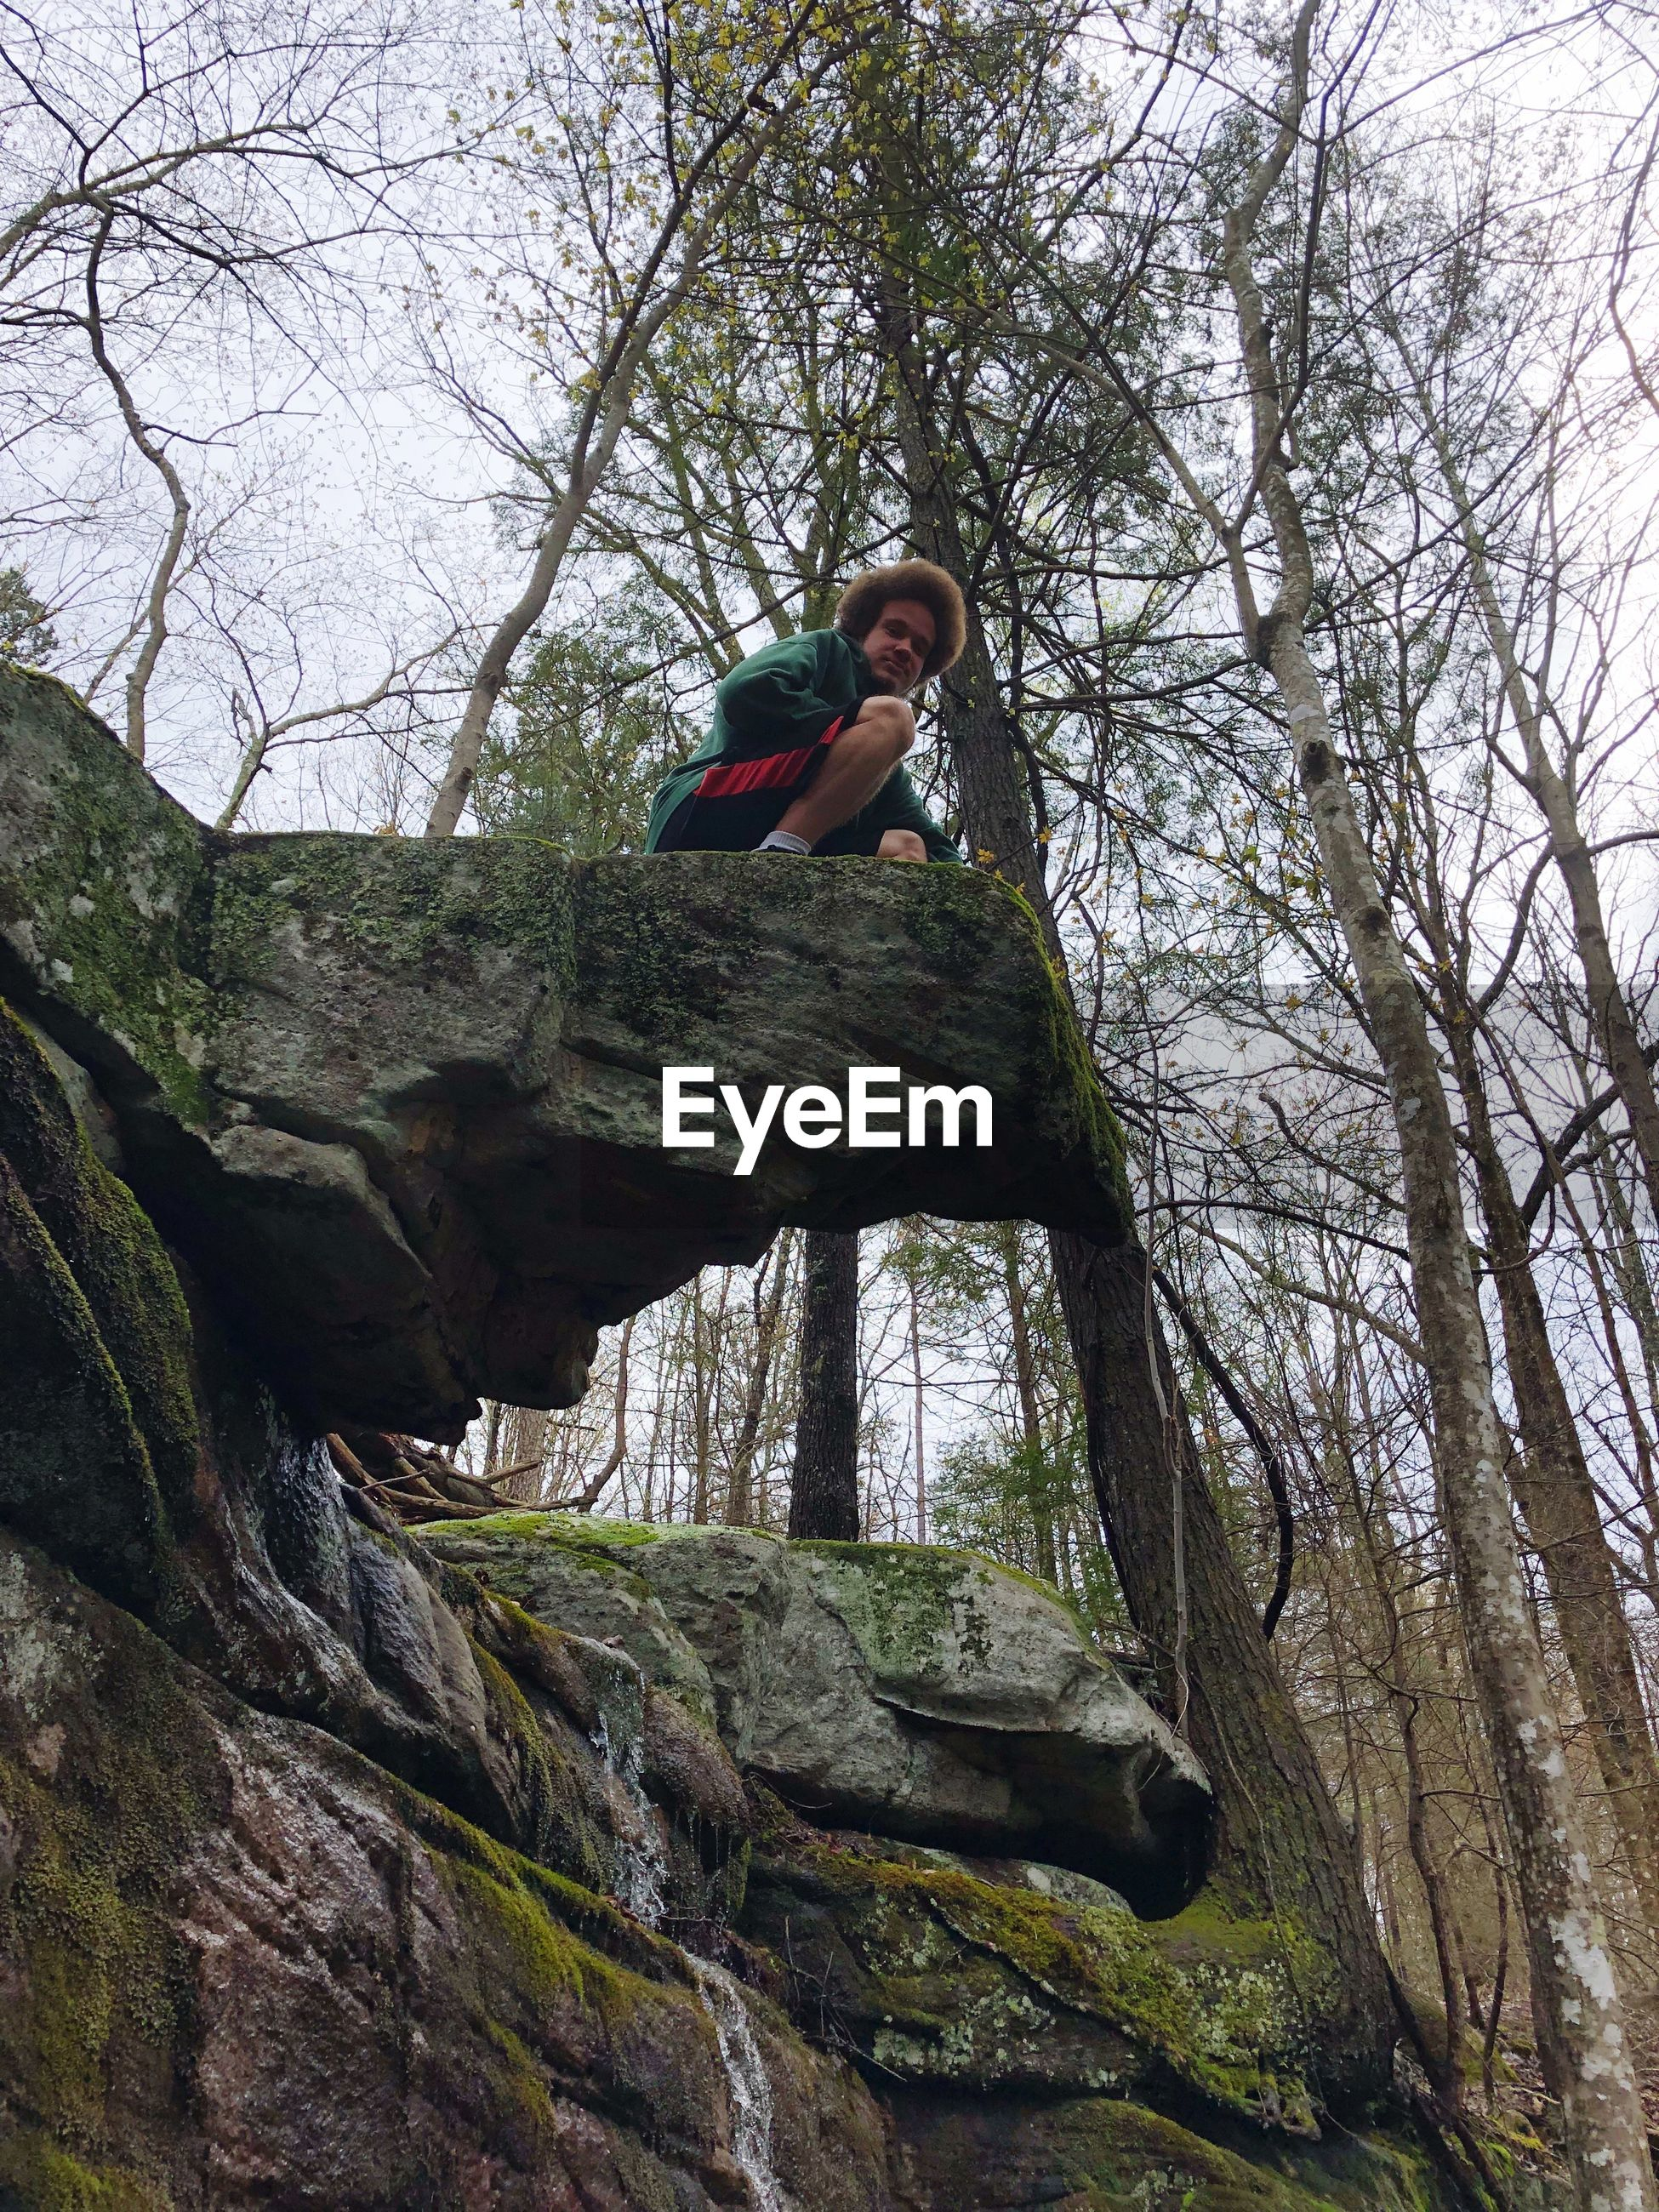 Low angle view of teenage boy on rock against bare trees in forest